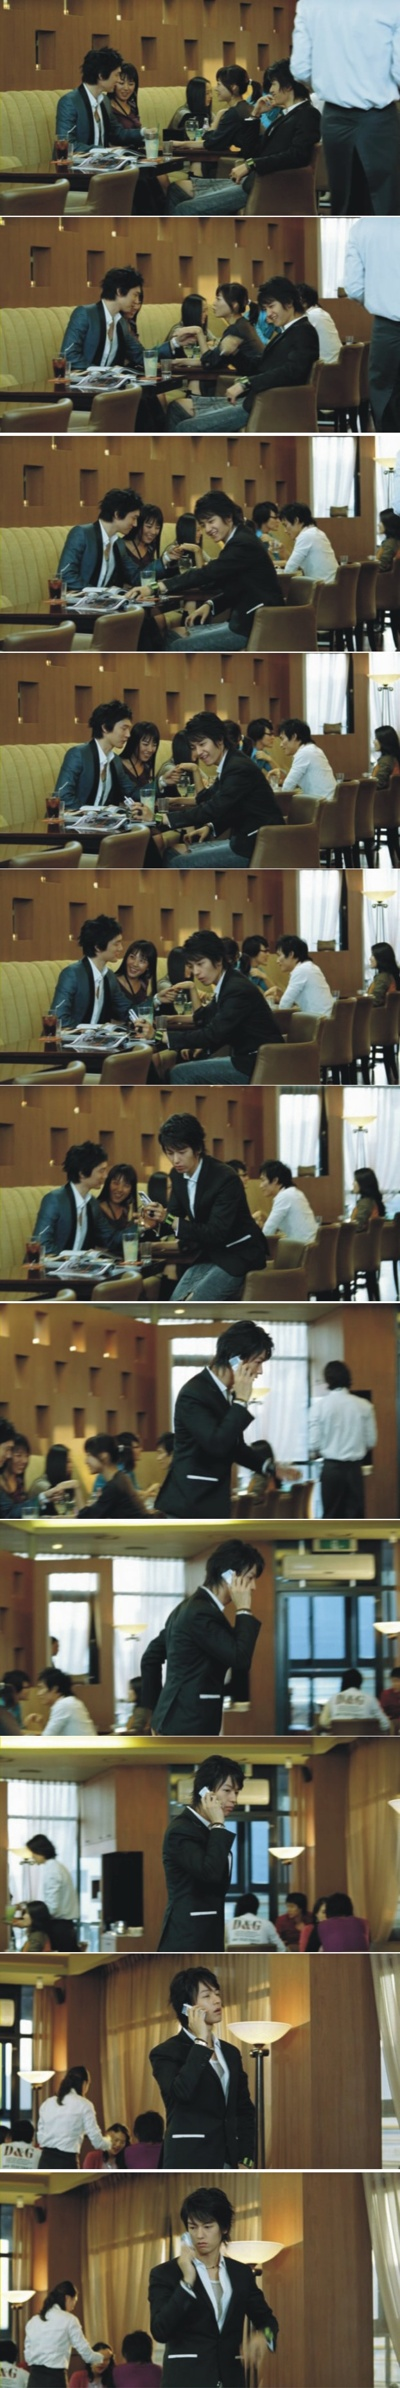 A Millionaire's First Love (2006) Download.php?grpid=QddO&fldid=AwkI&dataid=624&fileid=1&regdt=20061004225453&disk=15&grpcode=IMJUHWAN&dncnt=N&